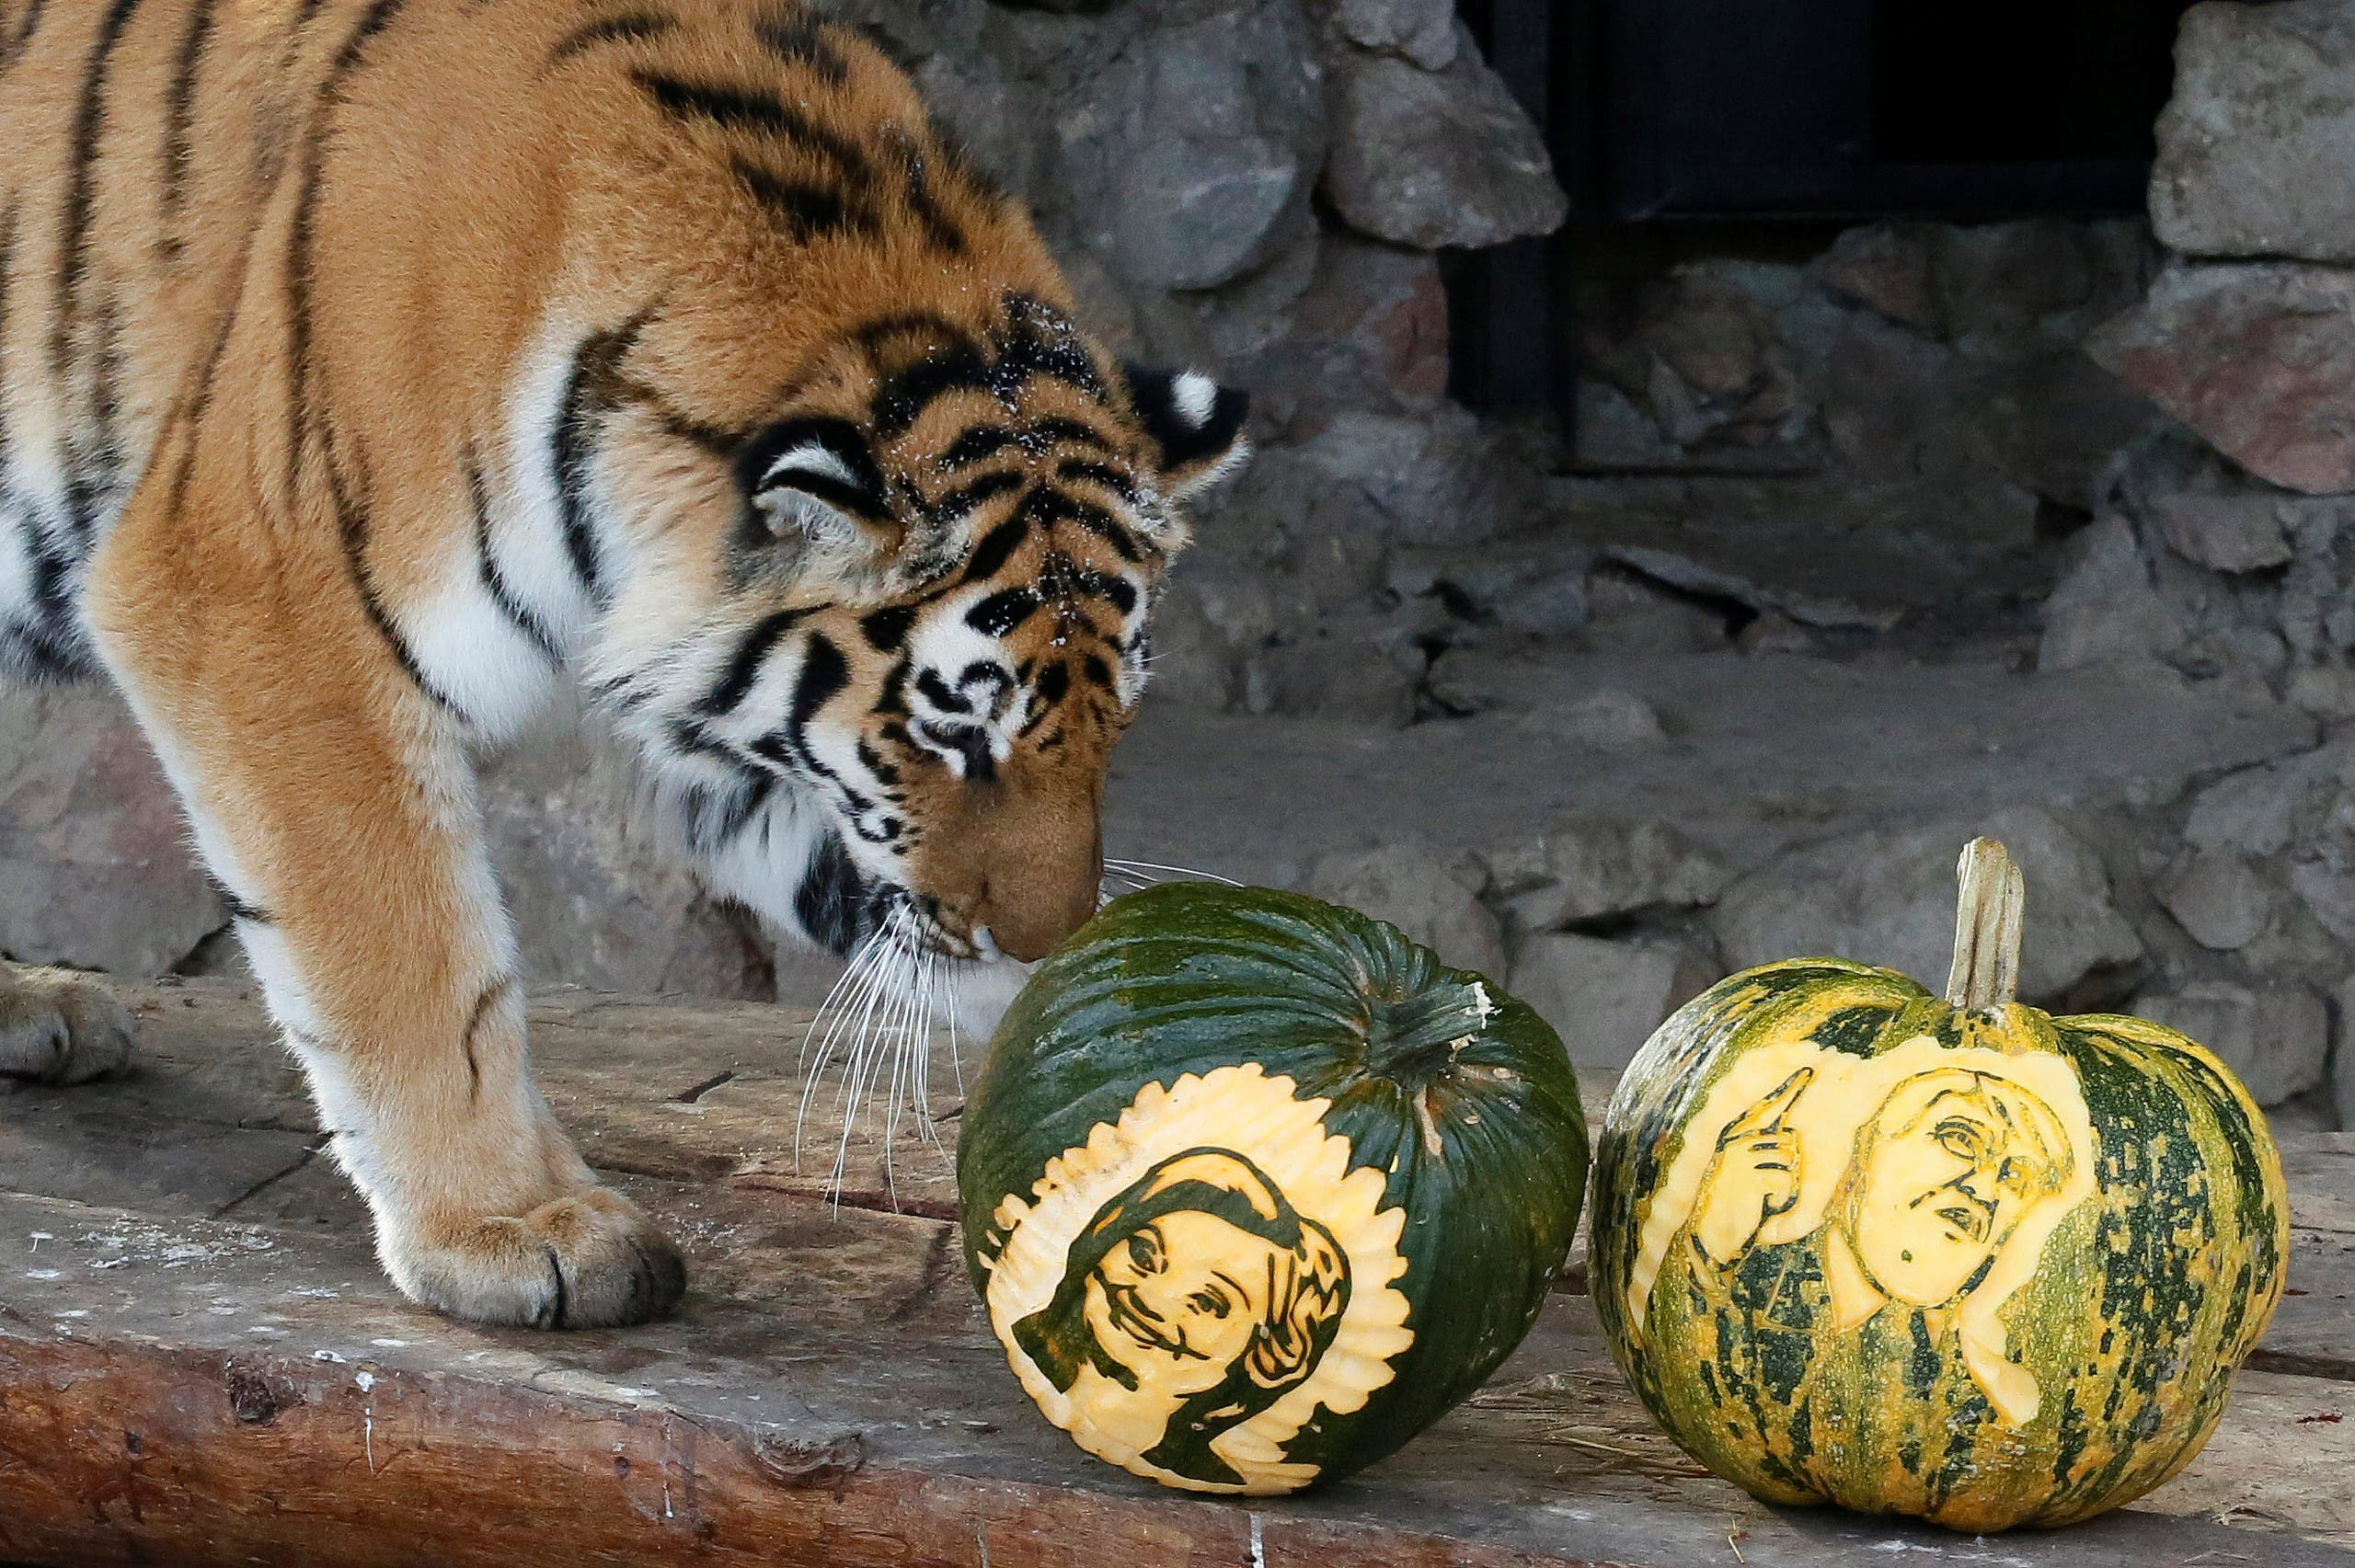 Yunona, a four-year-old female Amur tiger, stands near pumpkins with faces of U.S. presidential nominees Hillary Clinton and Donald Trump in Krasnoyarsk, Siberia, Russia, November 7, 2016. (Reuters)